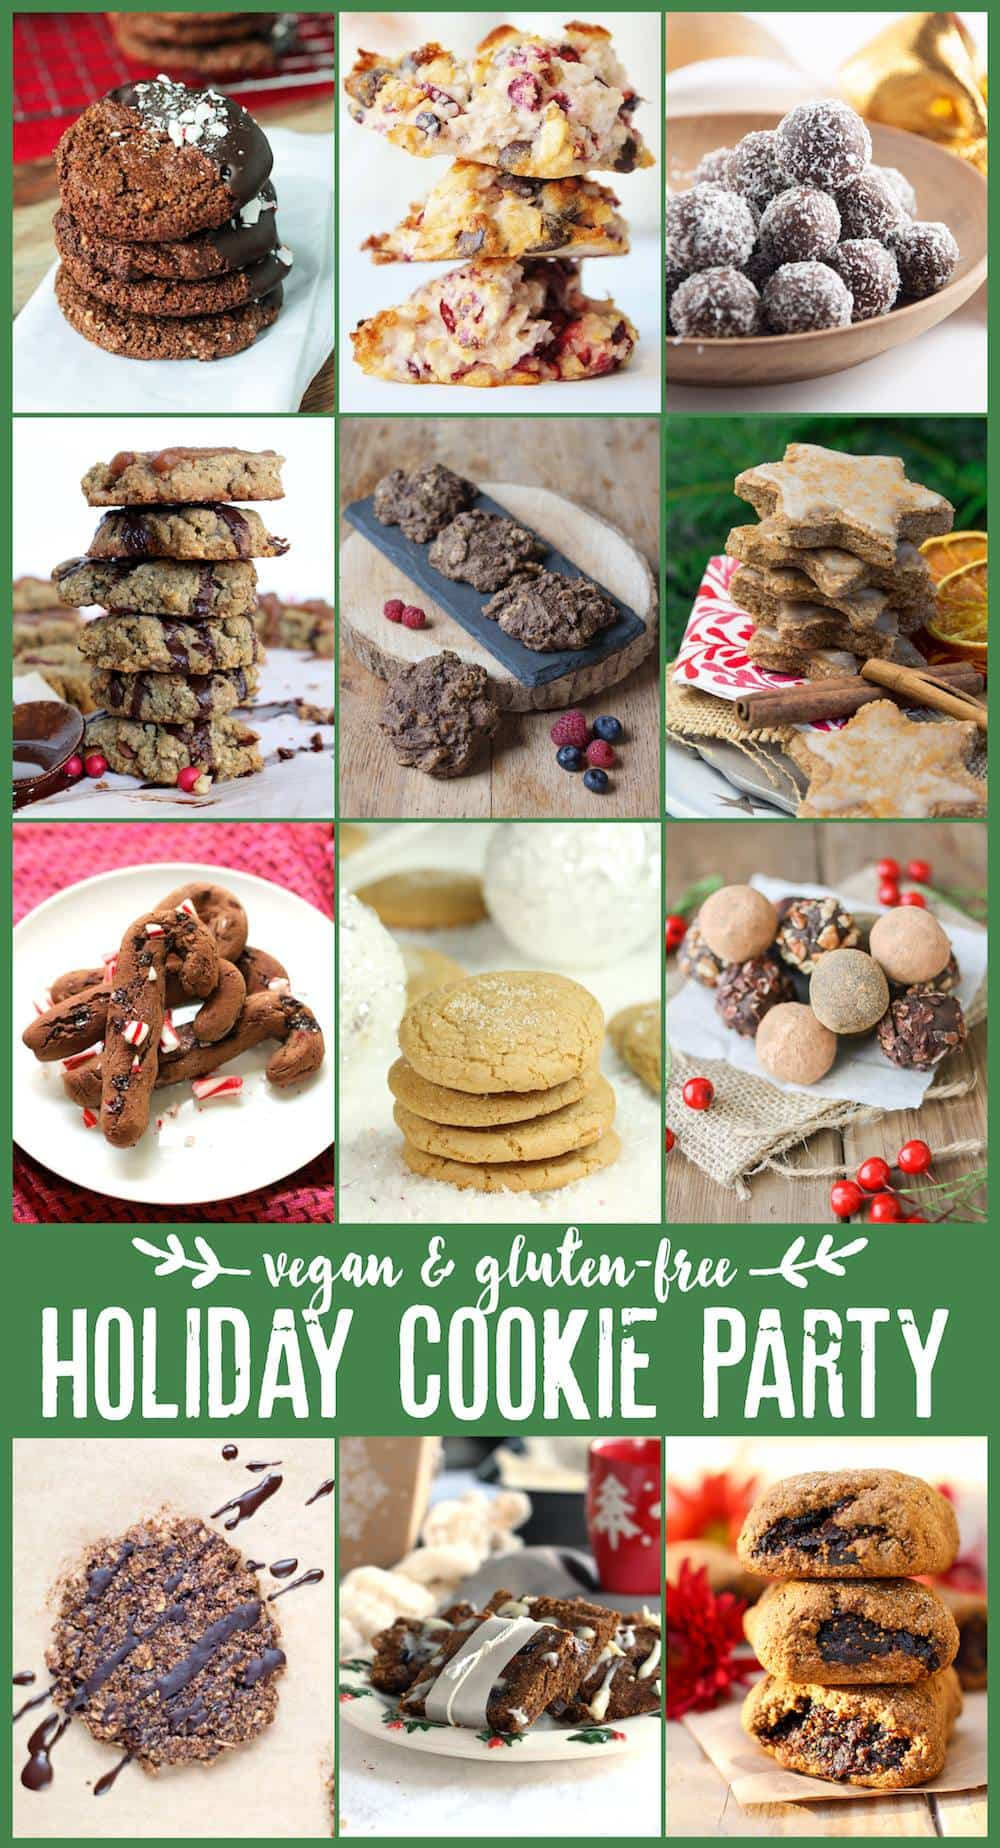 vegan & gluten-free Holiday Cookie Party